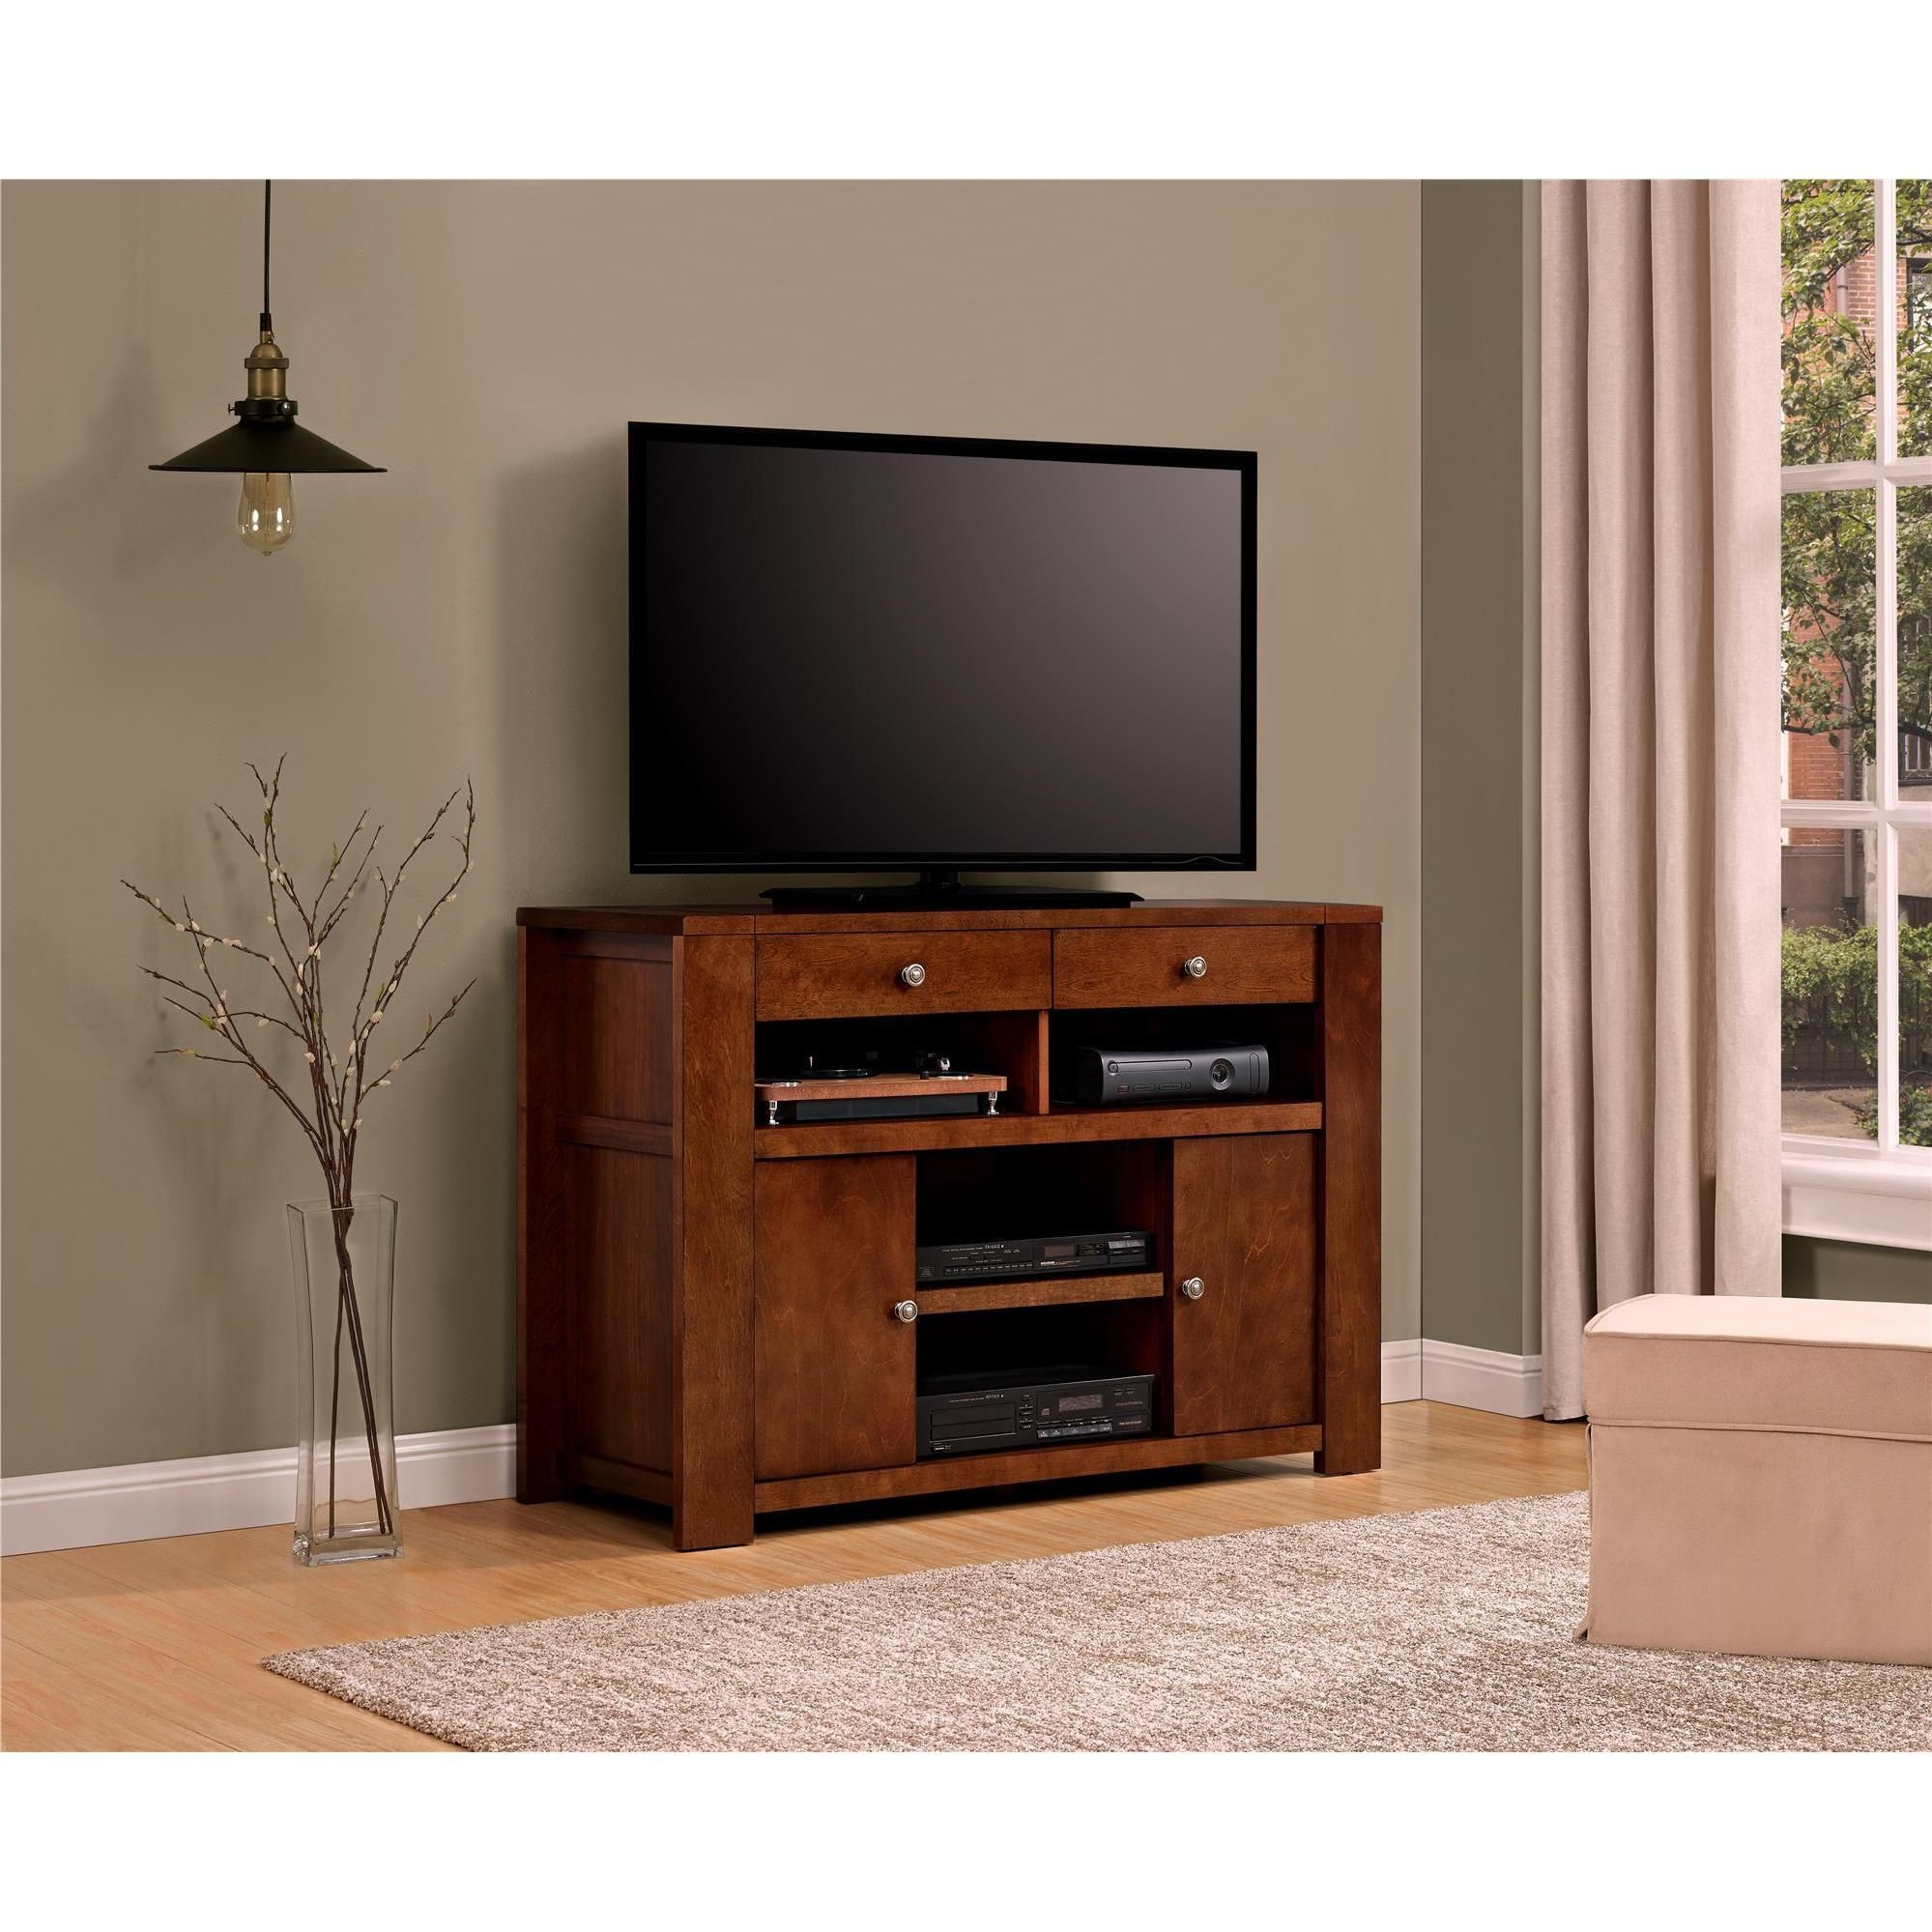 Well Known Brass Effect Wide Tv Stands With Overstock: Online Shopping – Bedding, Furniture (View 6 of 14)